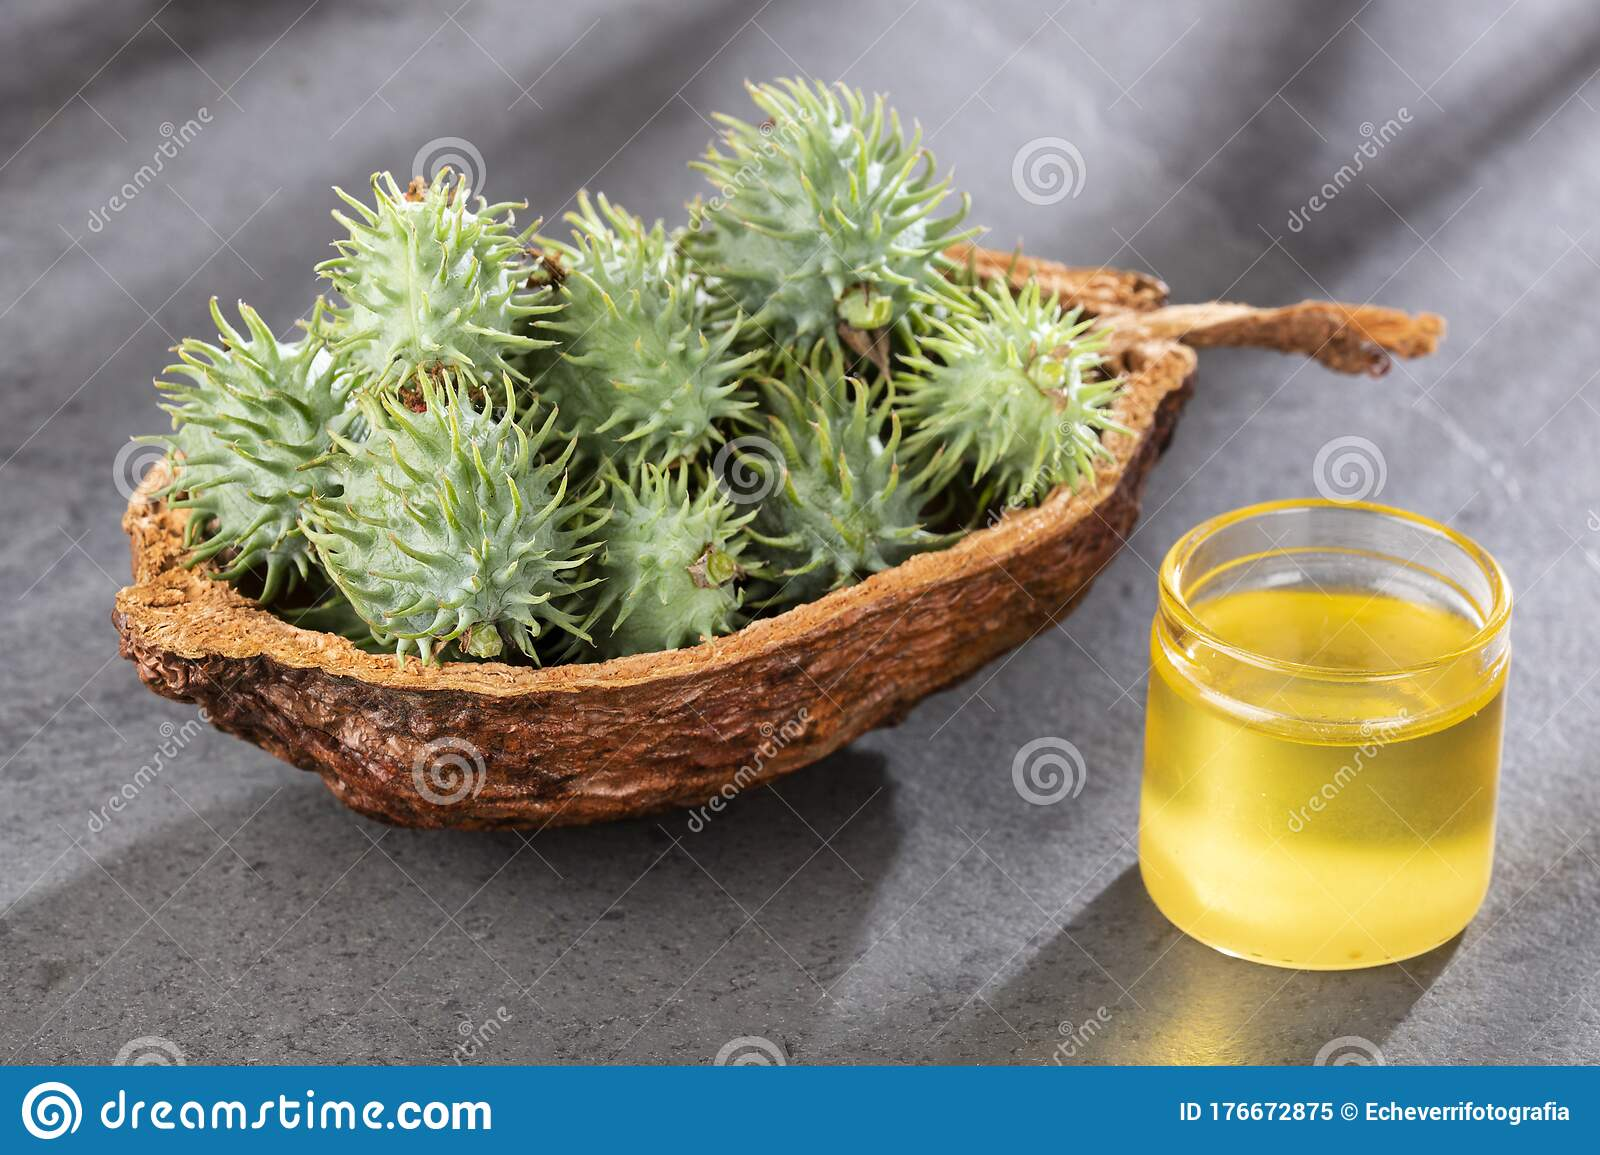 Seeds And Castor Oil Ricinus Communis Stock Image Image Of Cultivate Agriculture 176672875